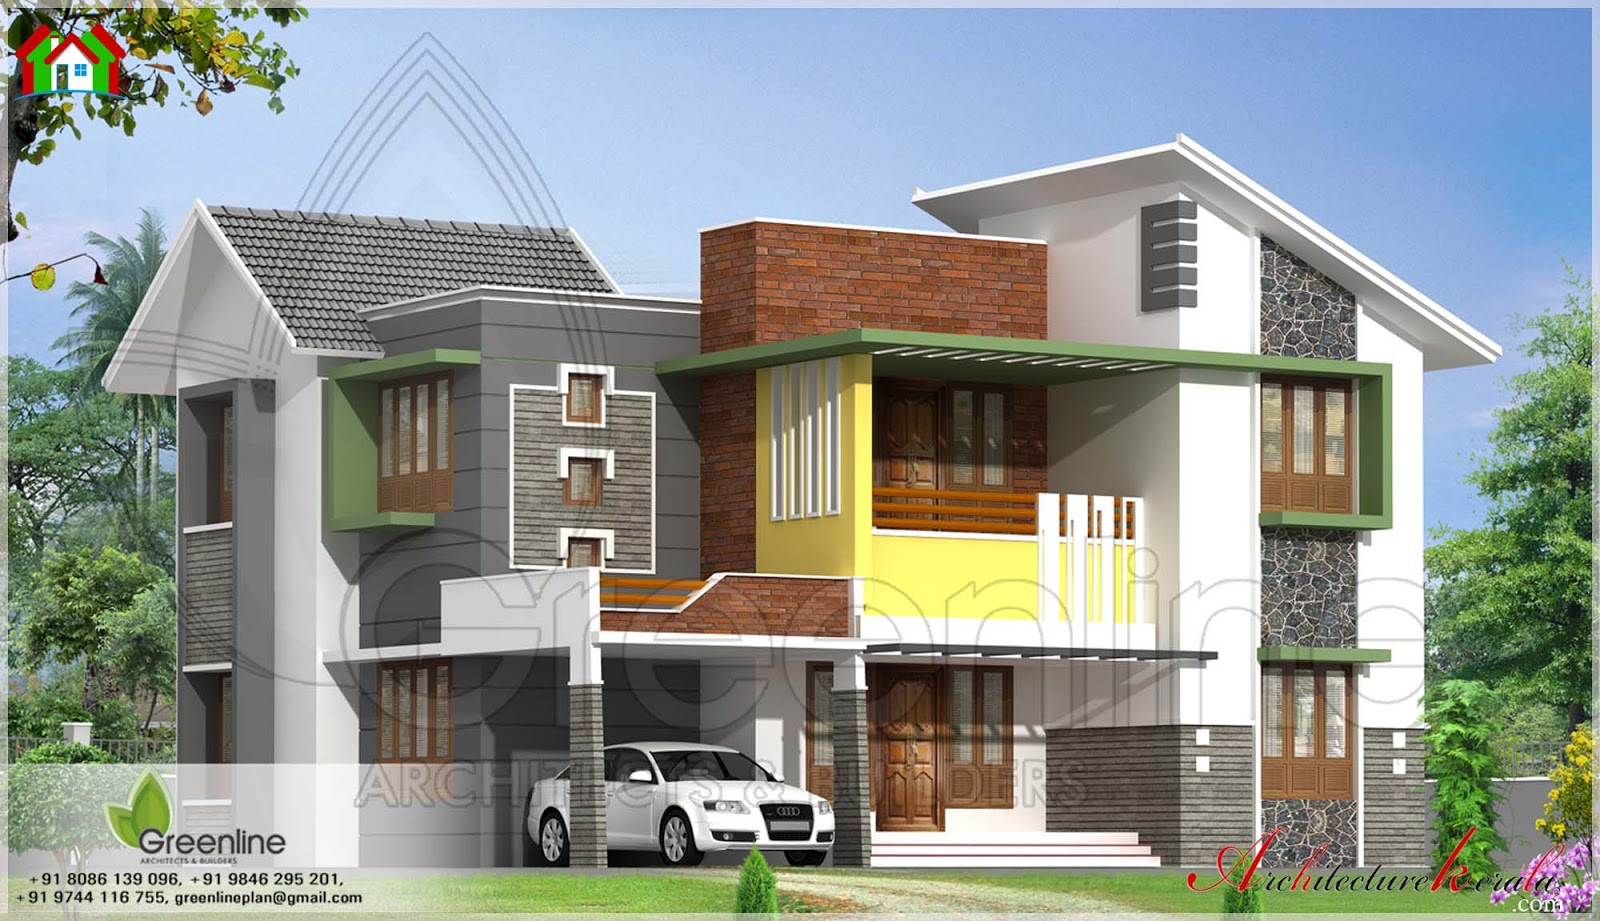 Modern style house elevation architecture kerala for Contemporary house in kerala